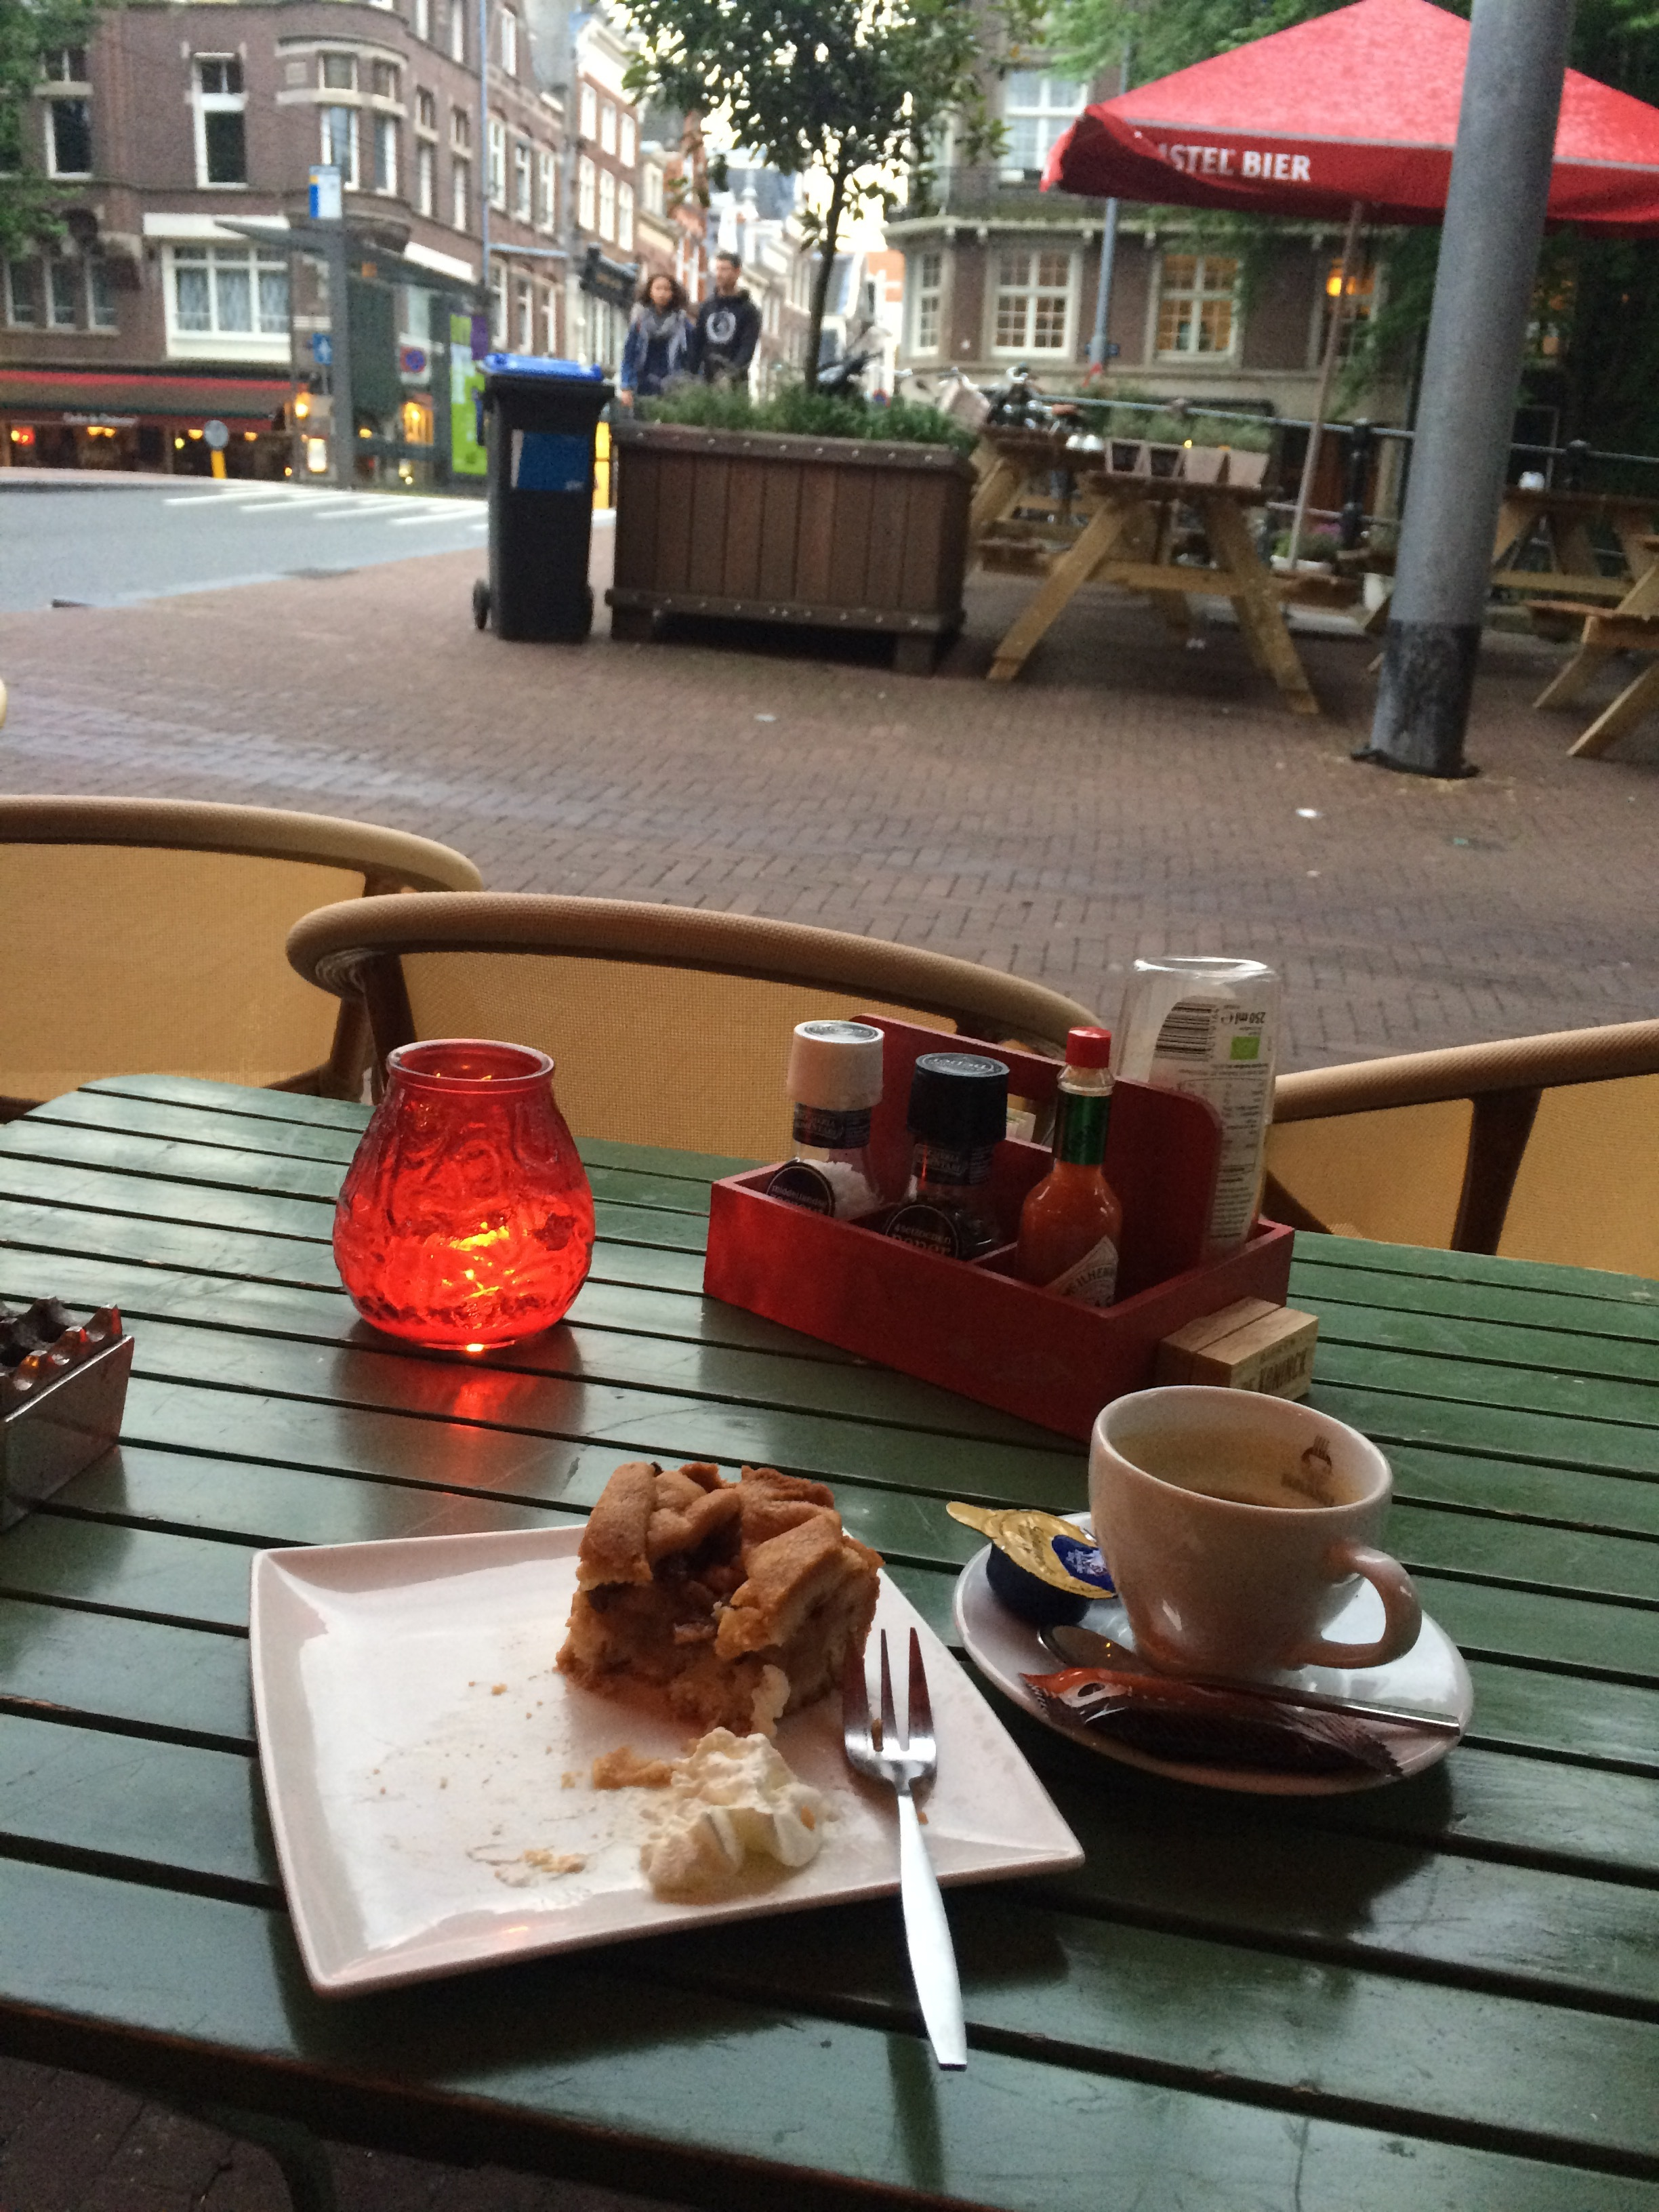 Apple tart and a coffee at the cafe across the street.